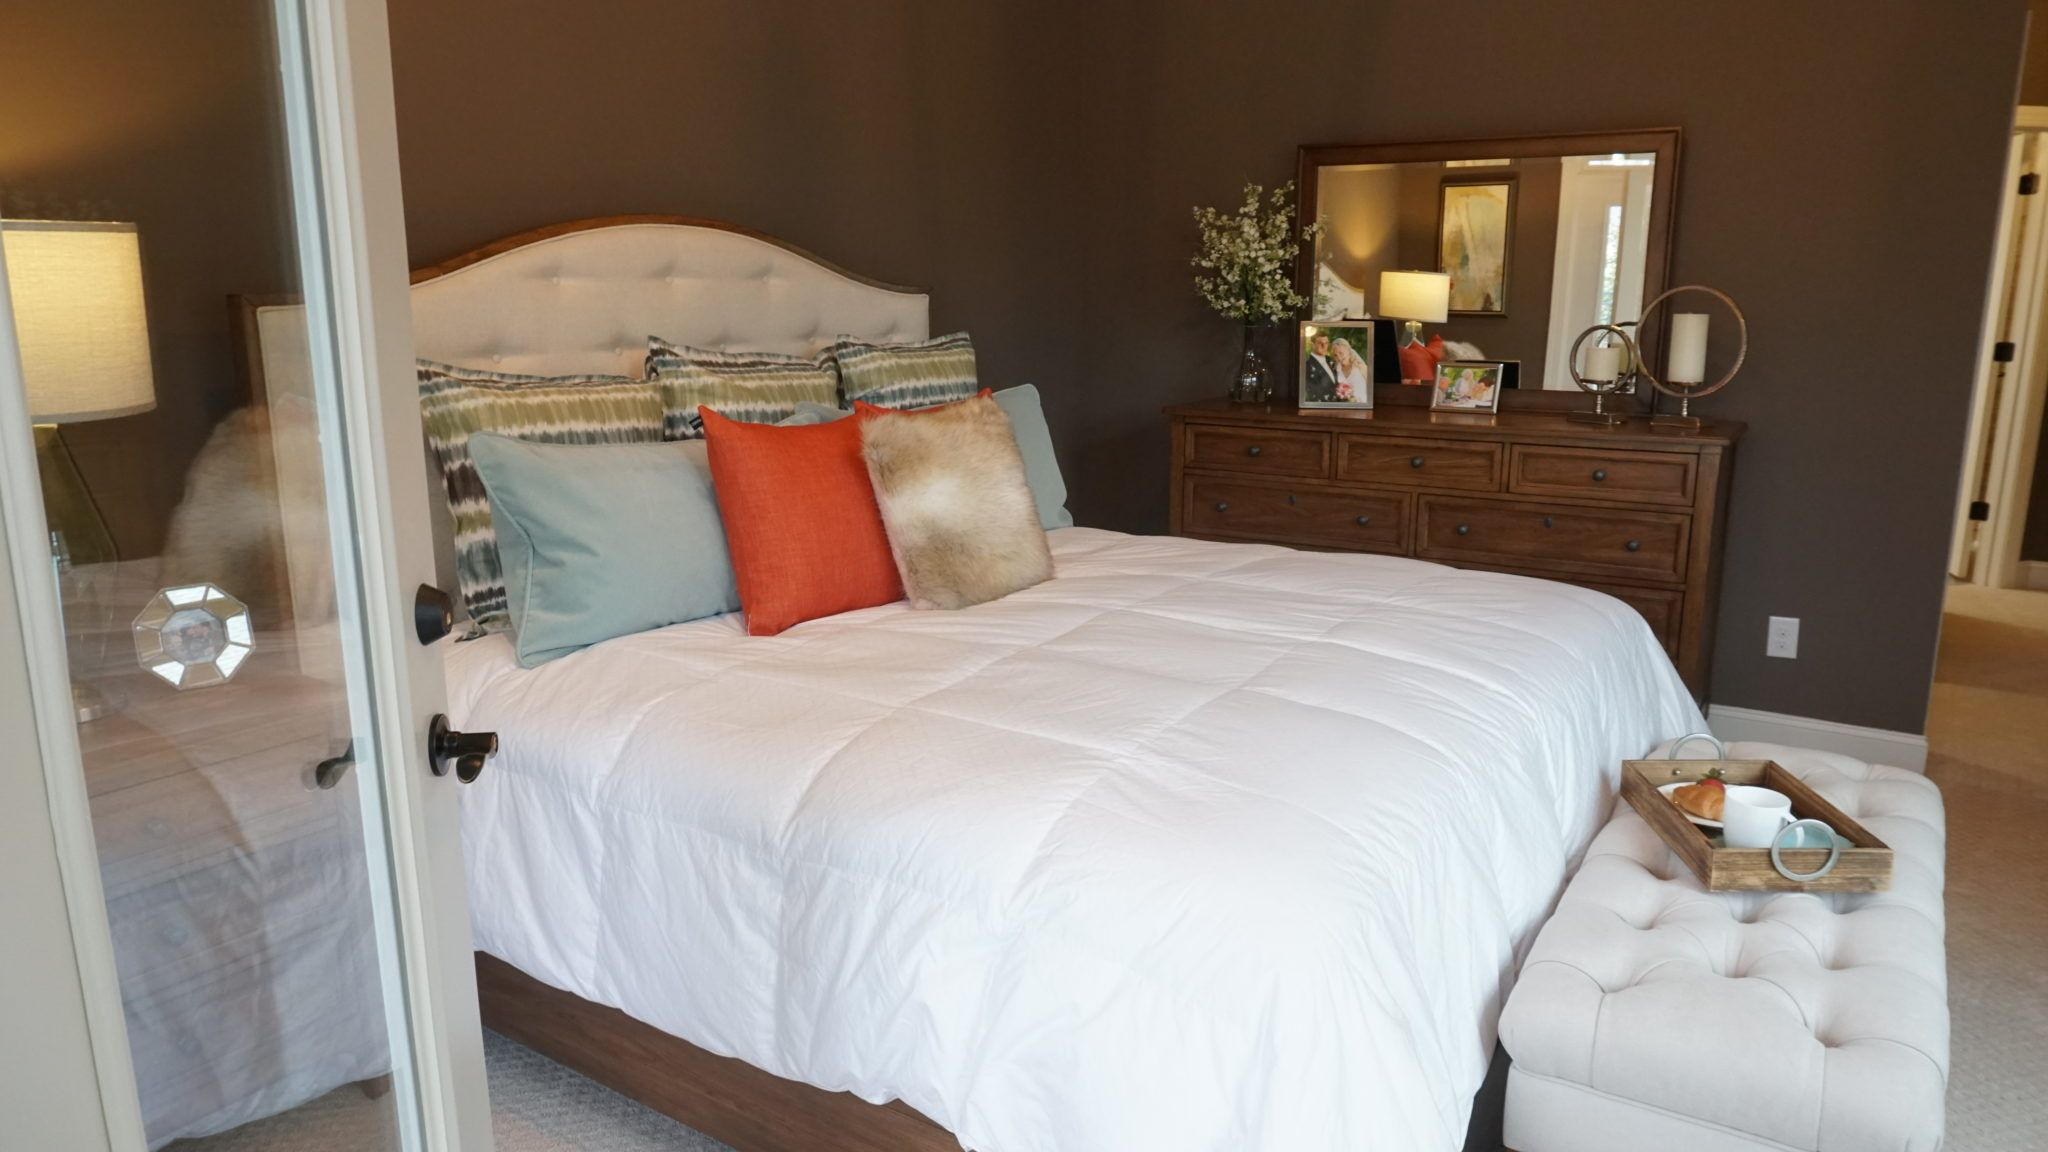 Bedroom featured in the Promenade III - Charlotte Corporate By Epcon Communities in Charlotte, NC